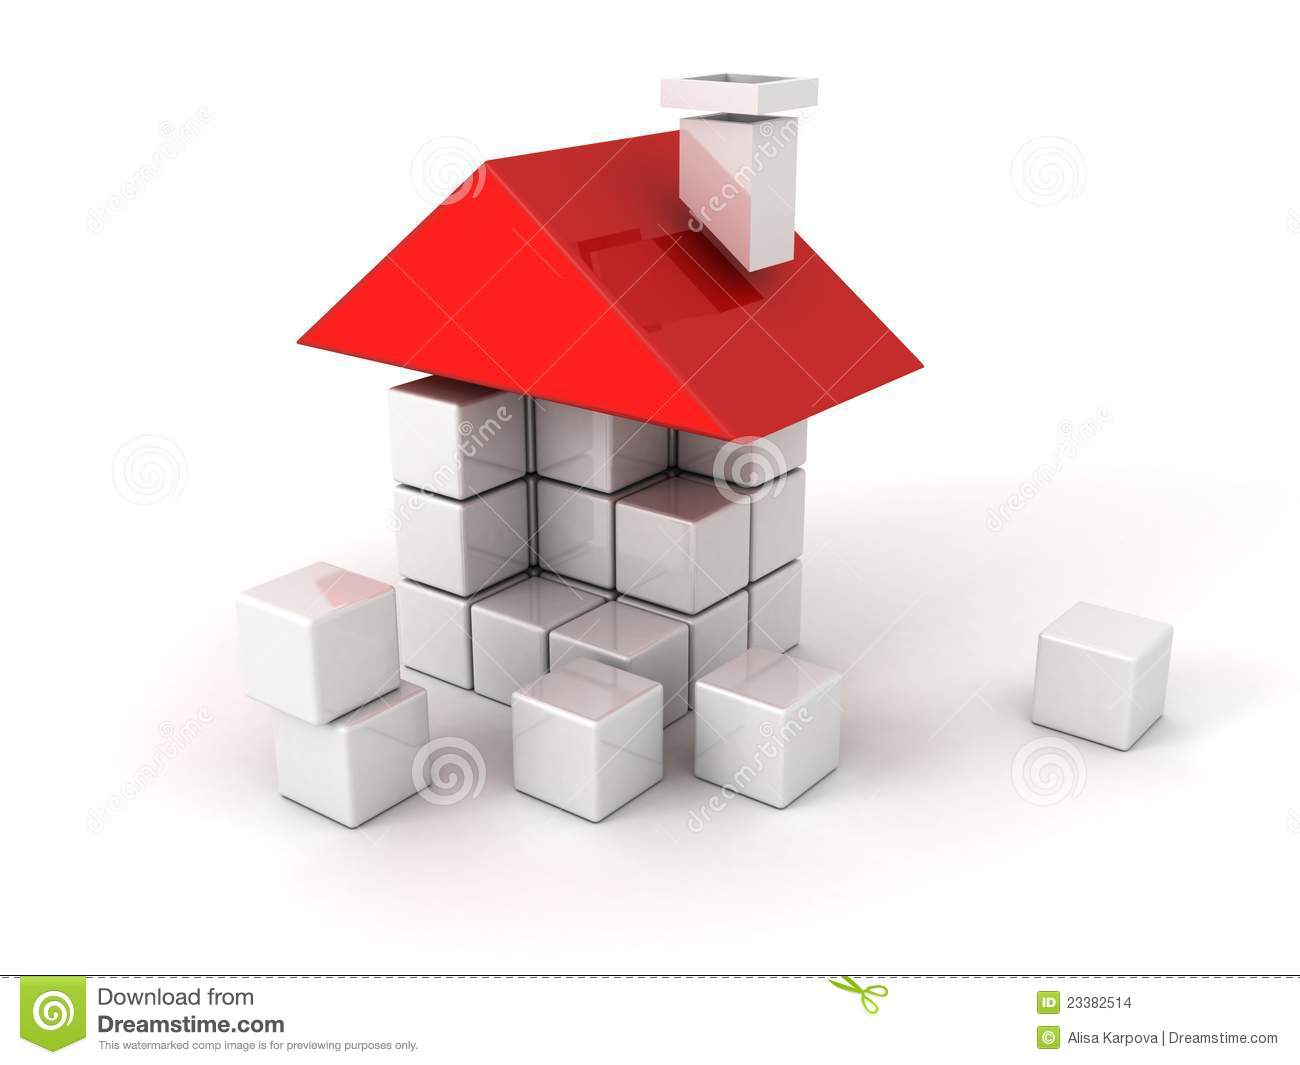 House of the plastic building blocks stock images image for Plastic building blocks home construction